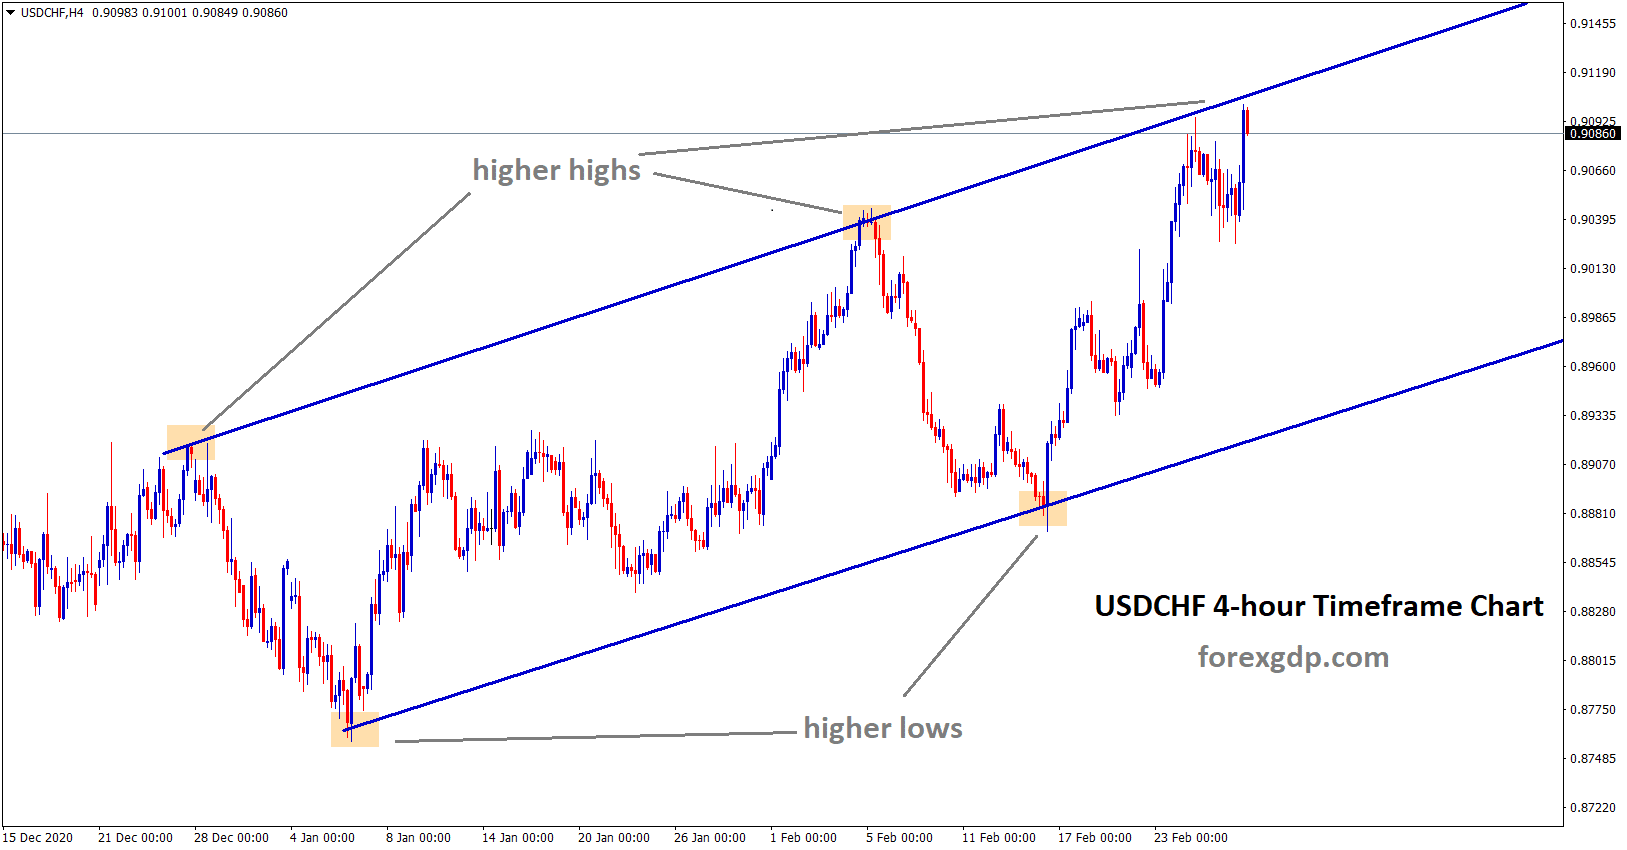 usdchf reached the higher high zone of an uptrend